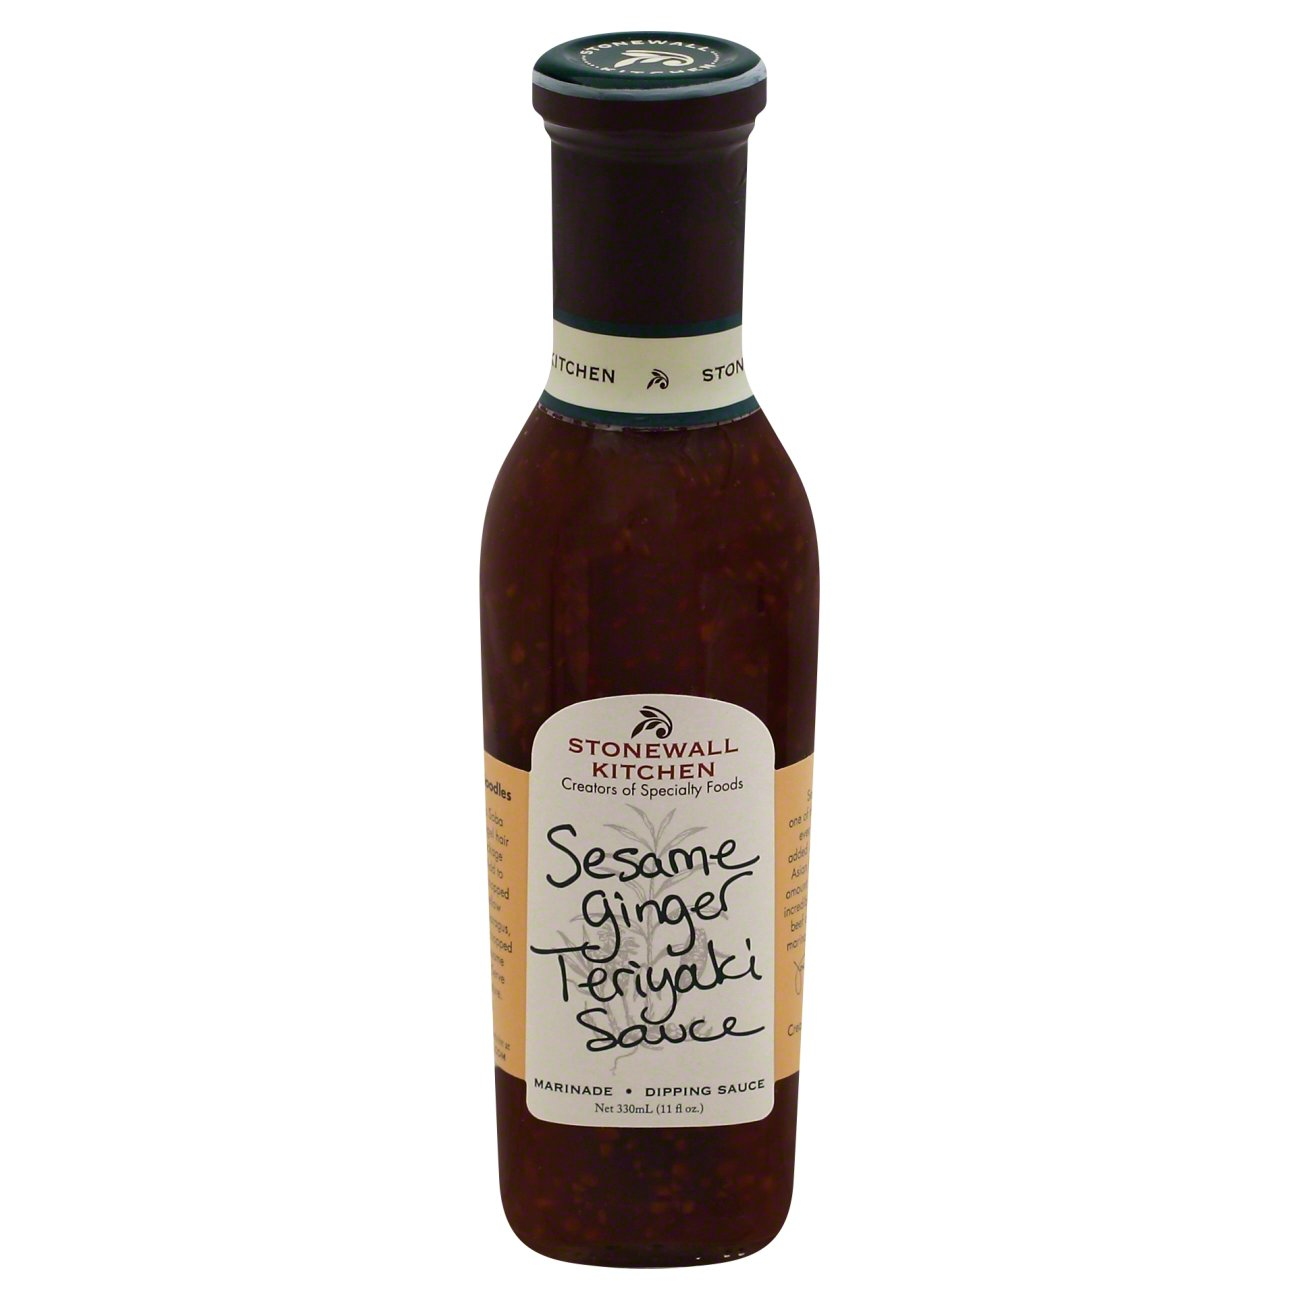 Stonewall Kitchen Sesame Ginger Teriyaki Sauce - Shop Marinades and ...